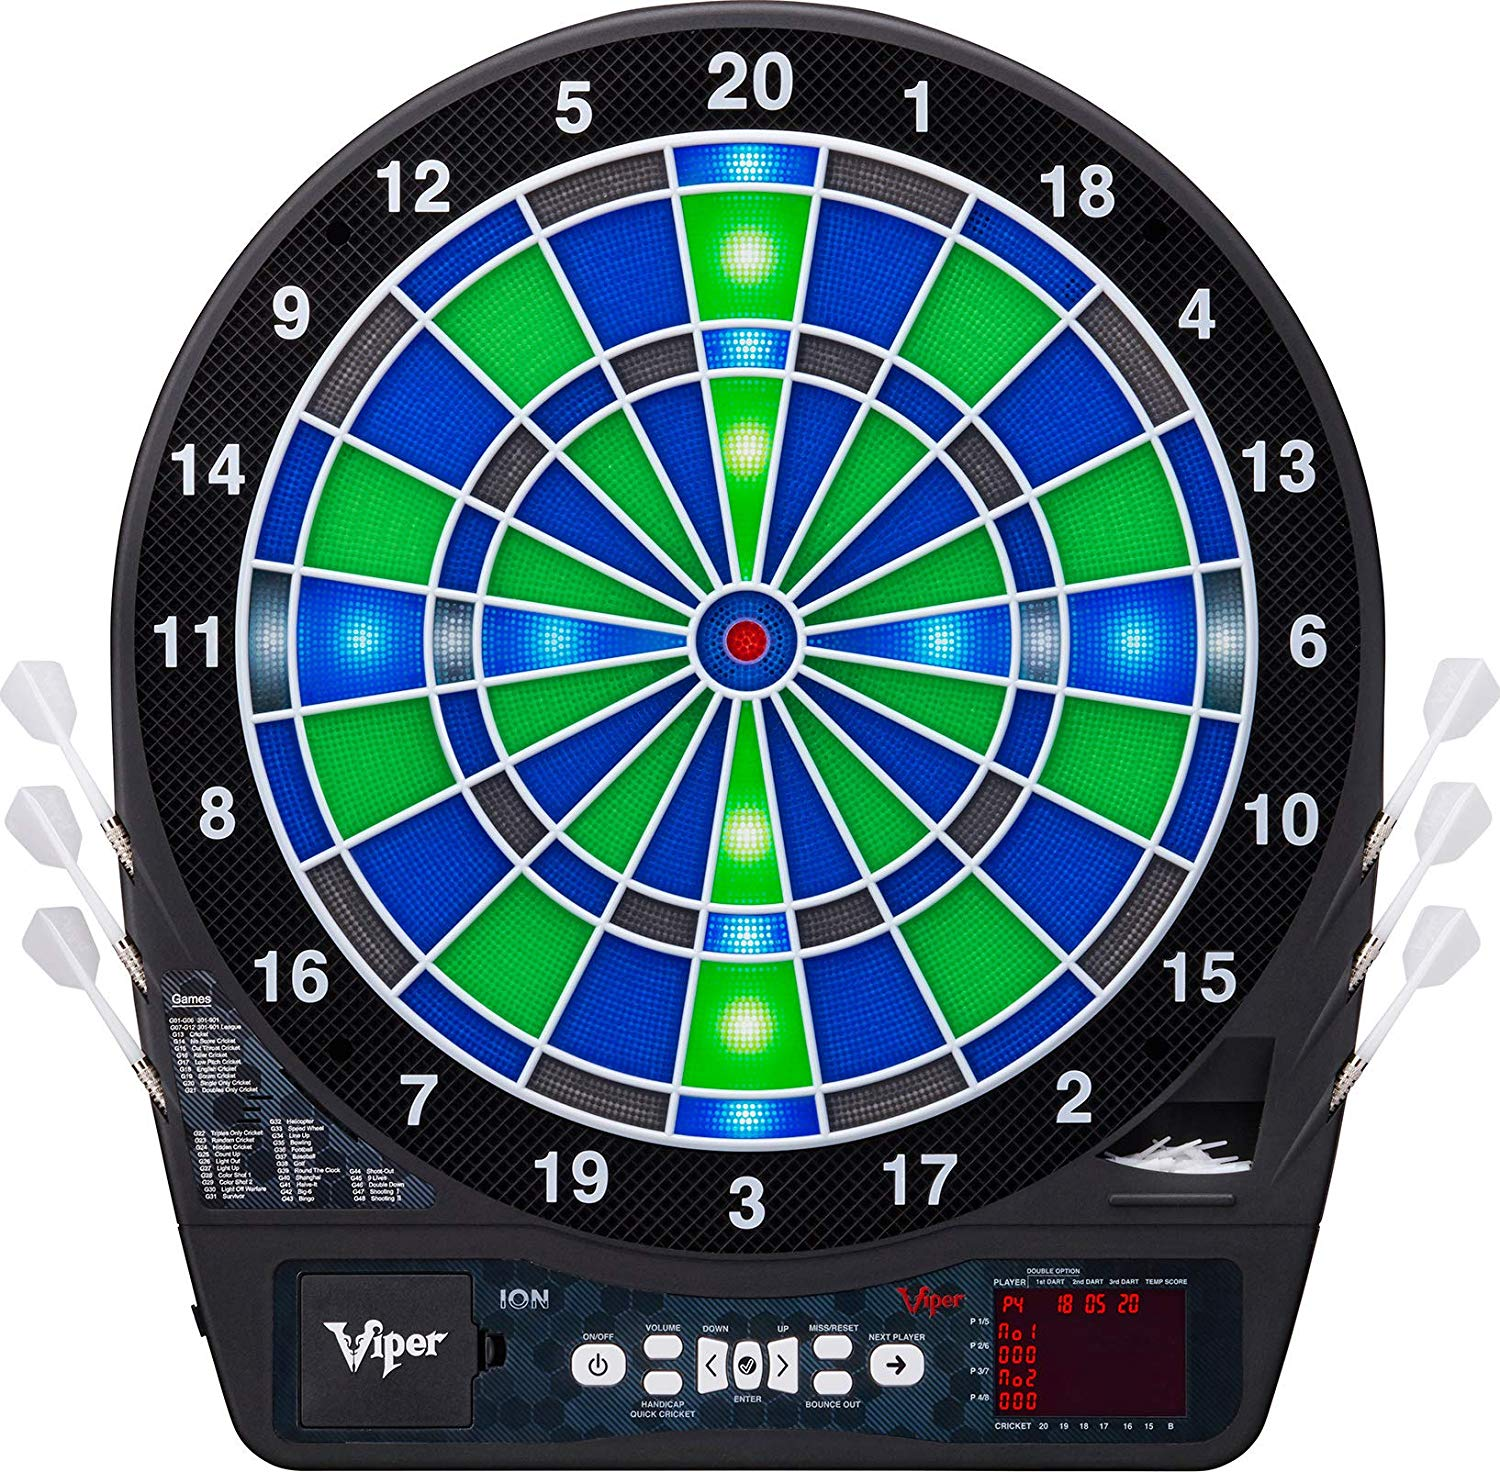 Viper Ion Electronic Dartboard